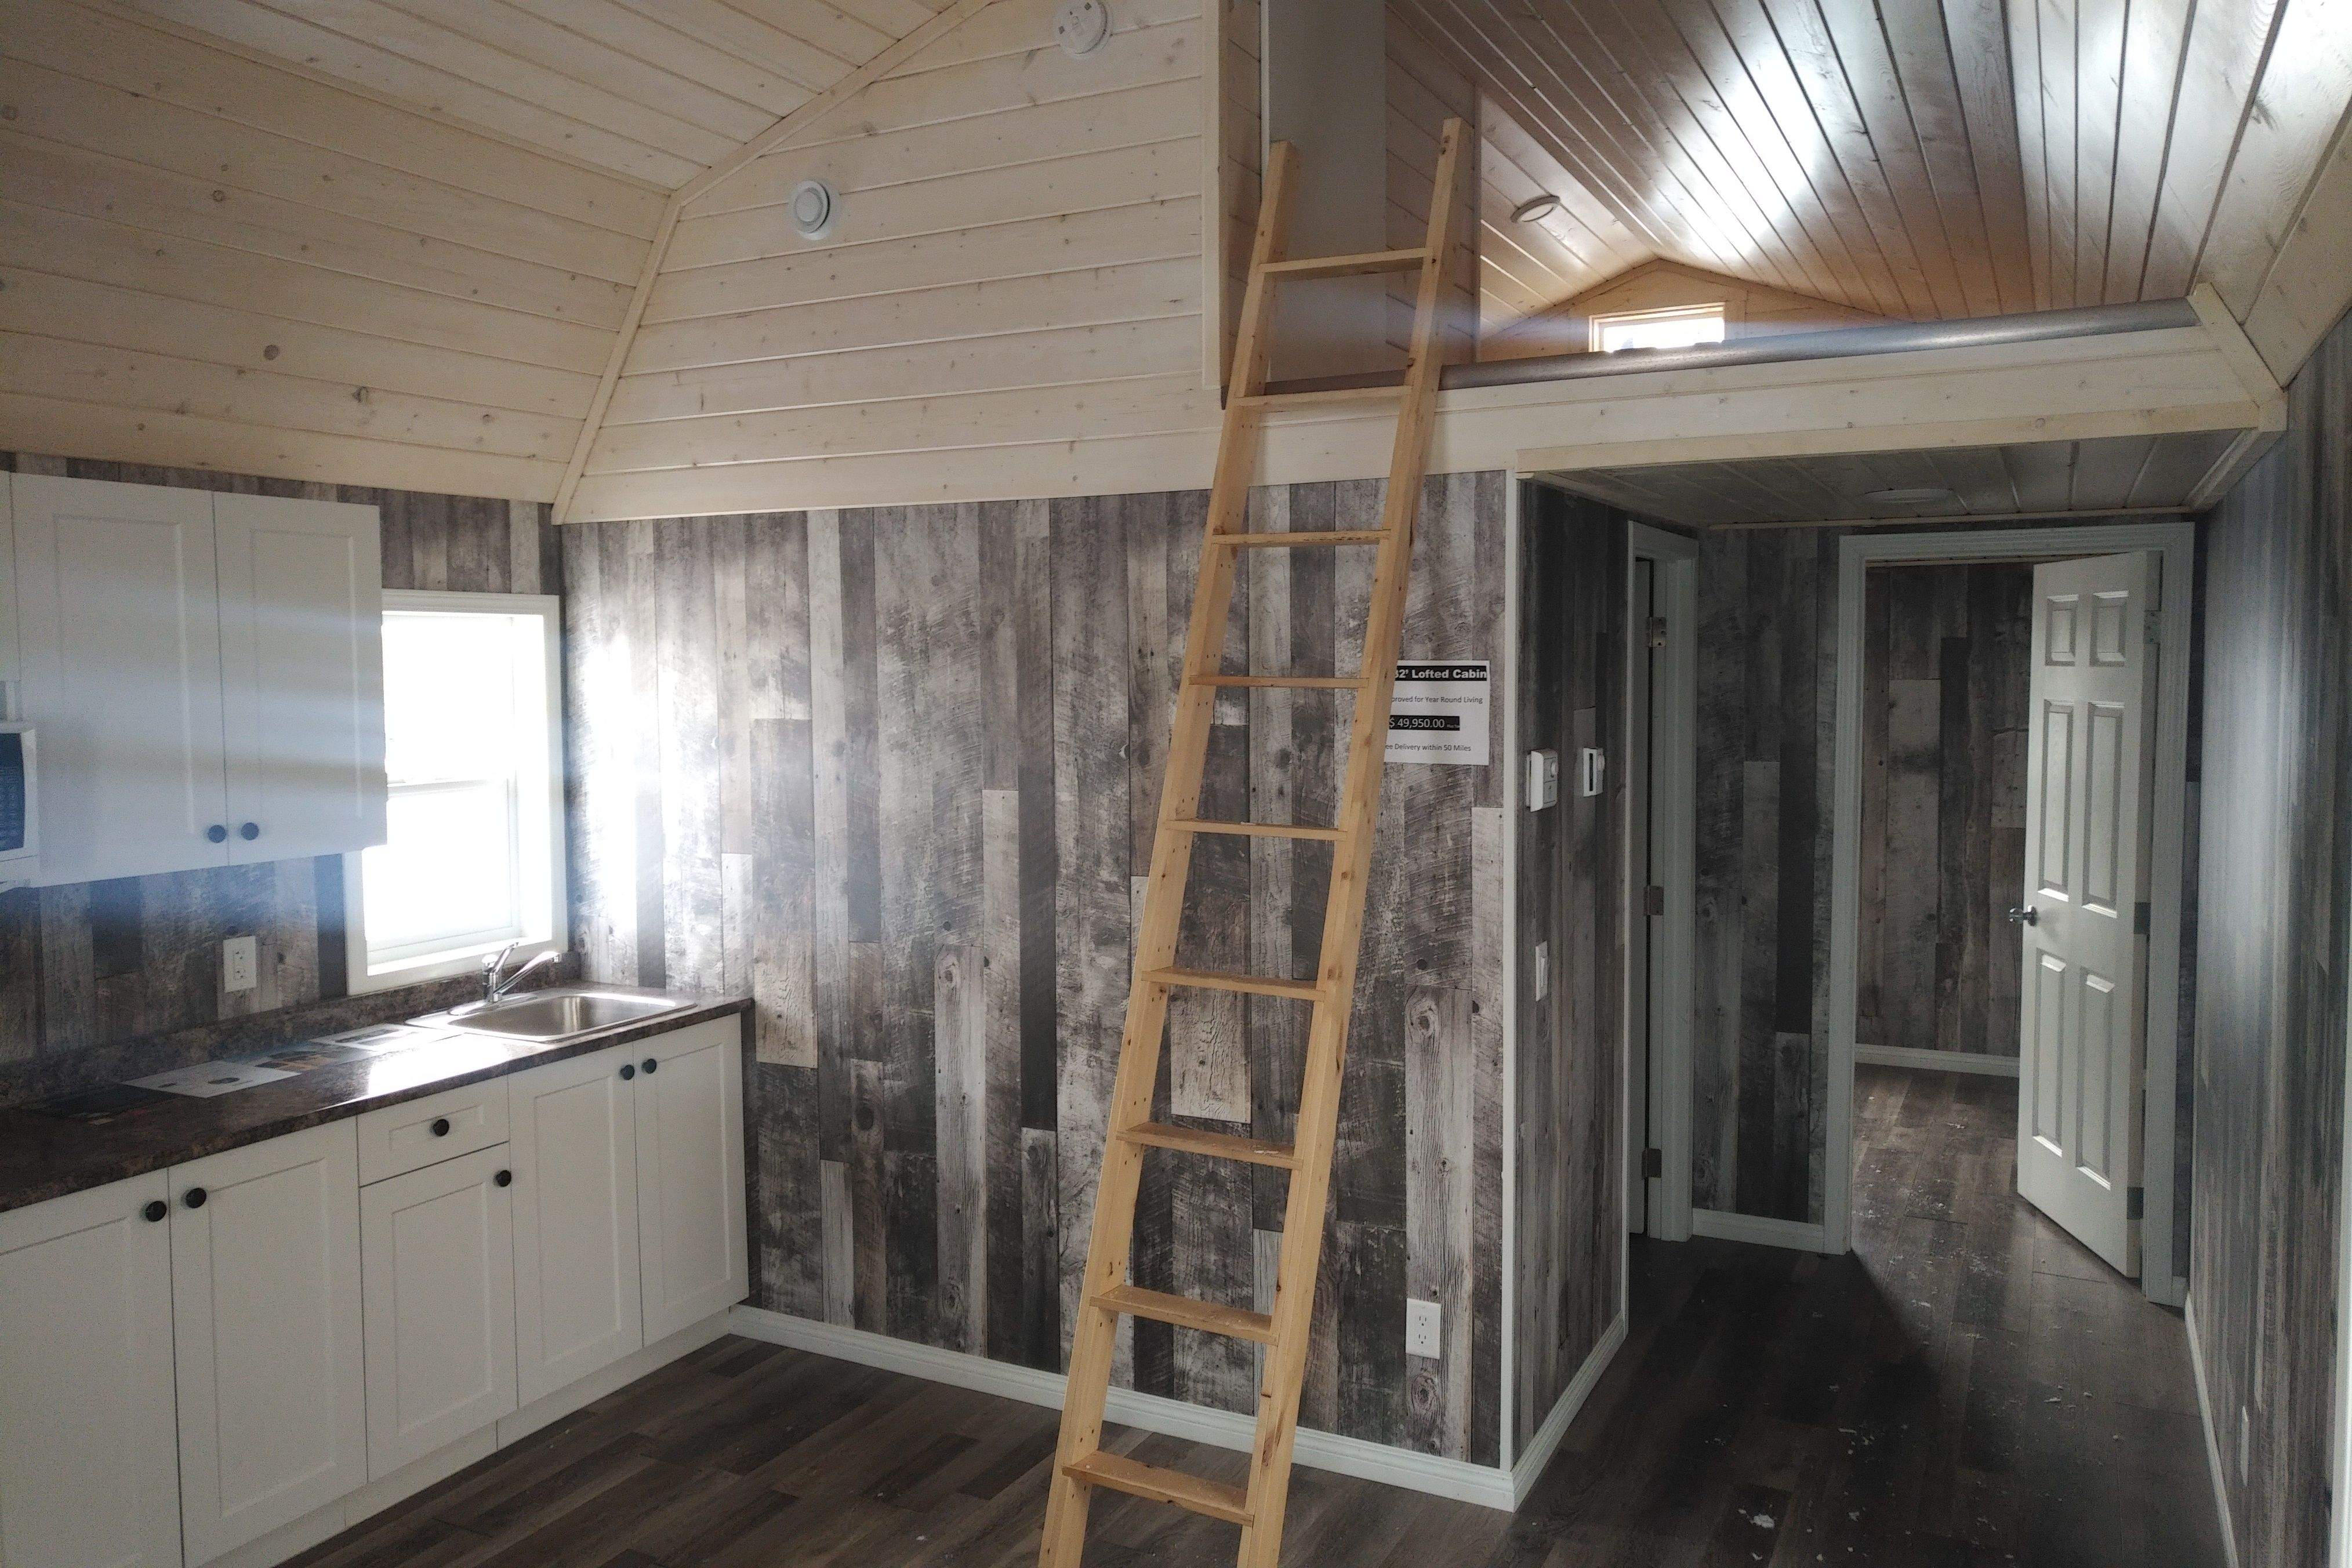 14x32 Lofted Barn Cabin Shed To House Conversion From Premier Portable Buildings Shed To Tiny House Tiny House Loft Shed Homes